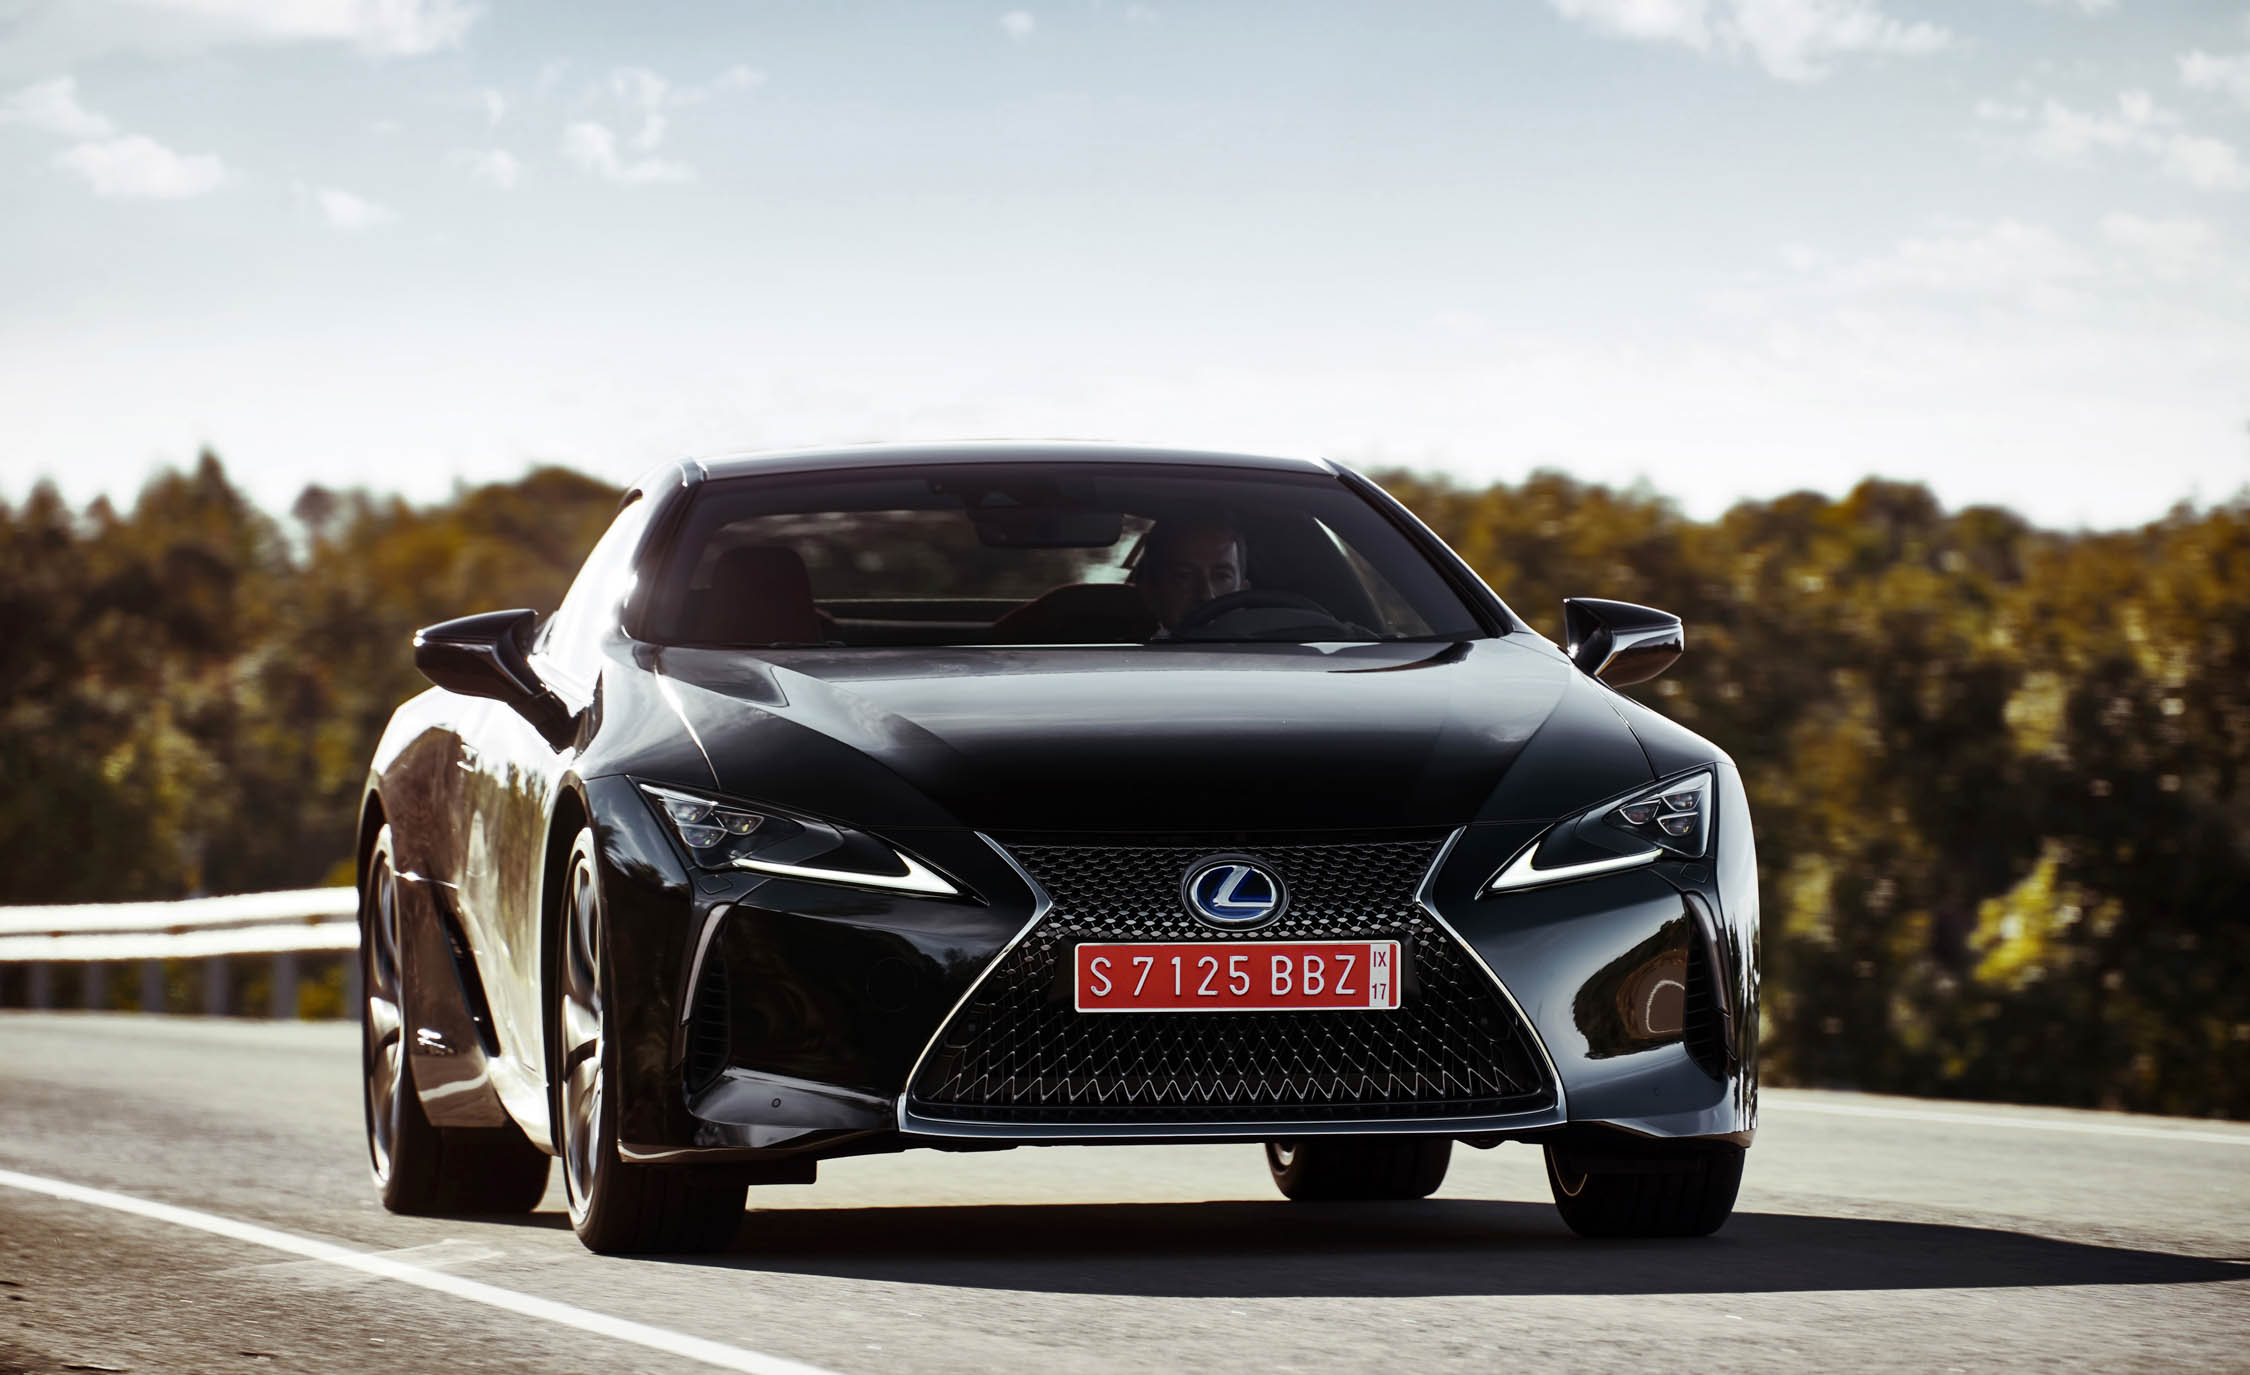 2018 Lexus Lc 500h Test Drive Front End (Photo 60 of 84)